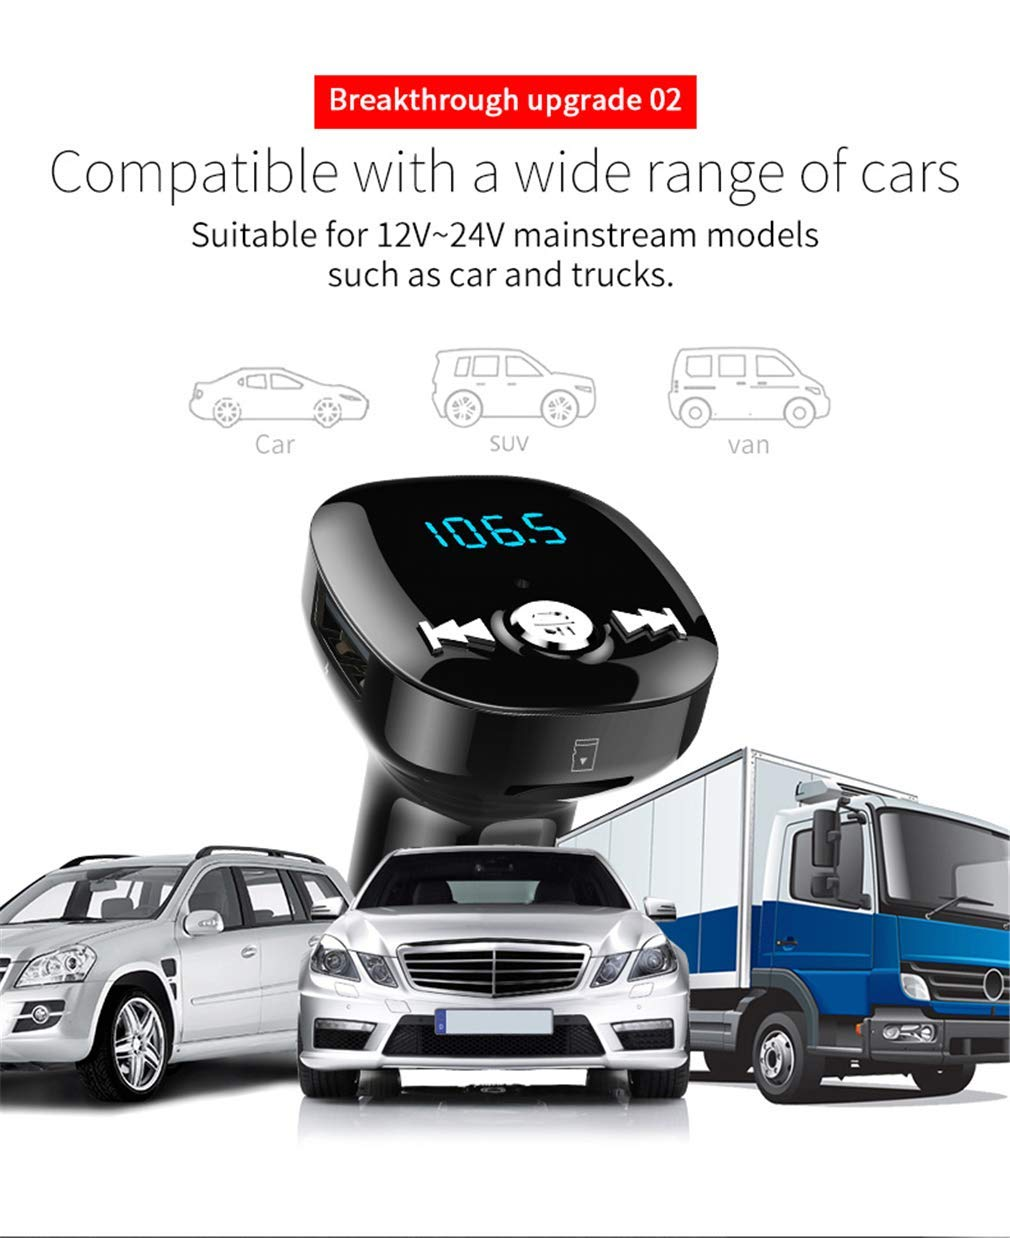 FM Transmitter MP3 Player Bluetooth Receiver/Hands Free Calling/Radio Adapter/Car Charger with Bluetooth 4.2/2 USB Ports Car Kit by Nwbdqc (Image #3)